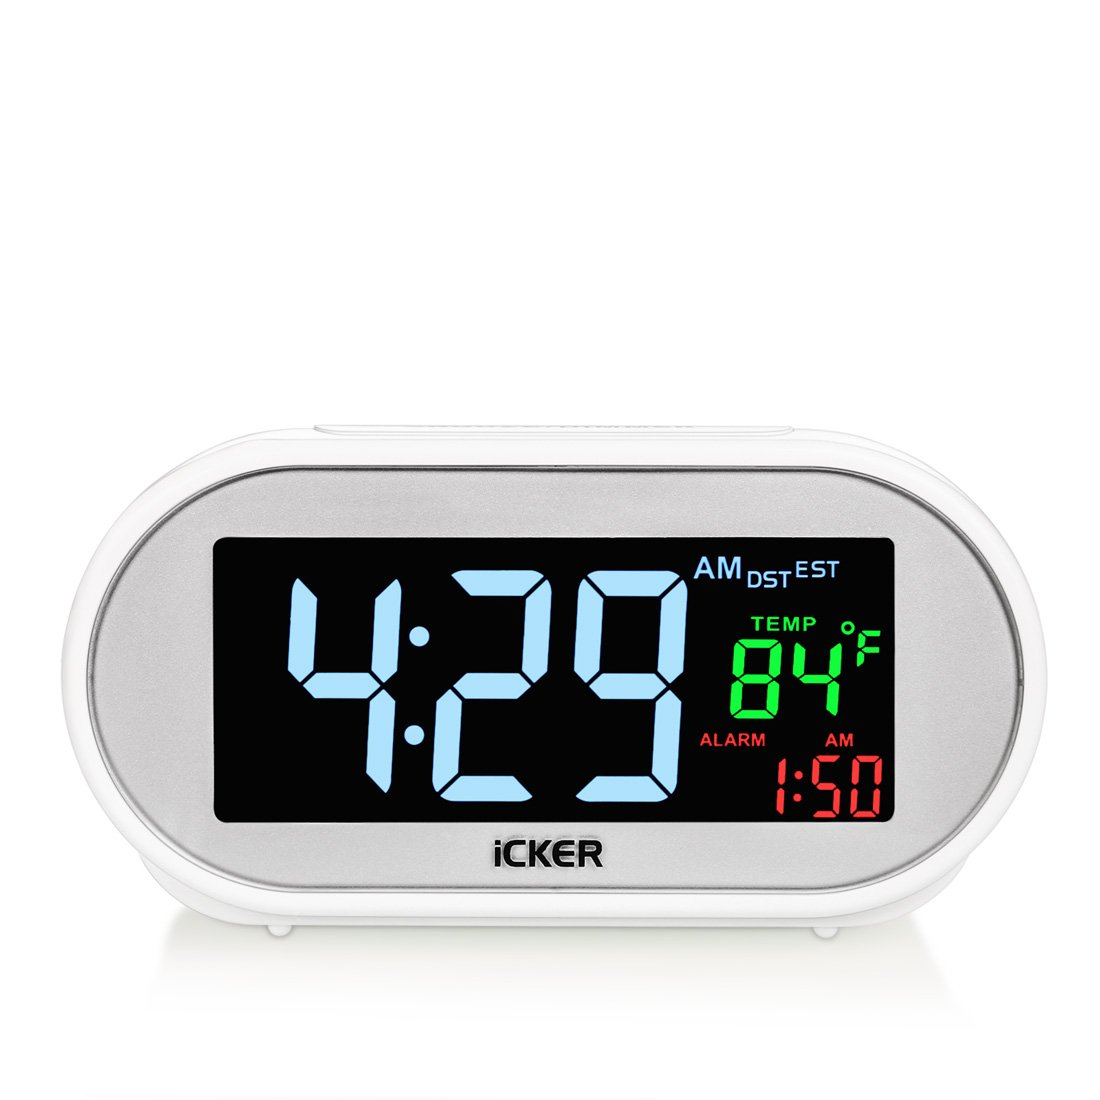 Digital Alarm Clock with USB Charger Port, Led Clock with Dimmer for Bedrooms, Four Time Zone, Auto DST, Indoor Temperature, Battery Backup